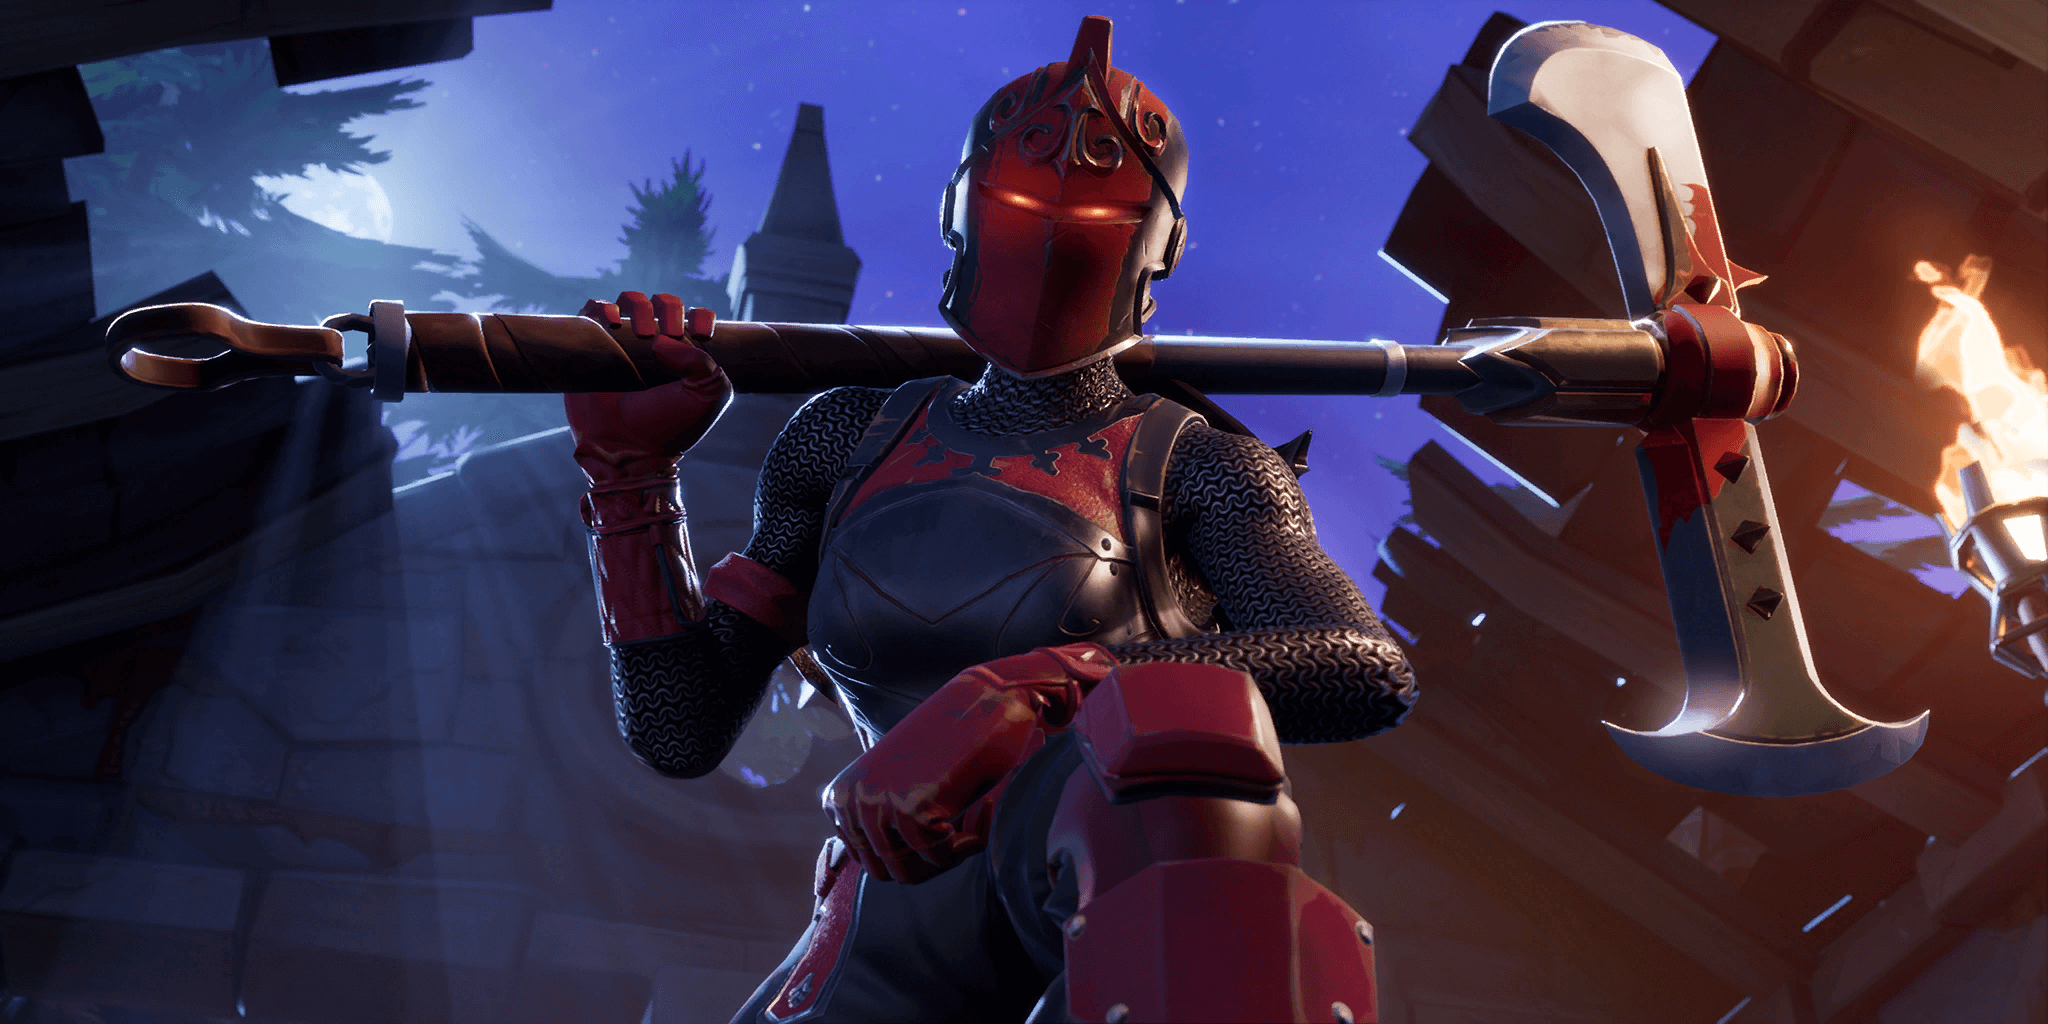 Fortnite Ops | Fortnite Leaks, News, Images, Tips, Guides